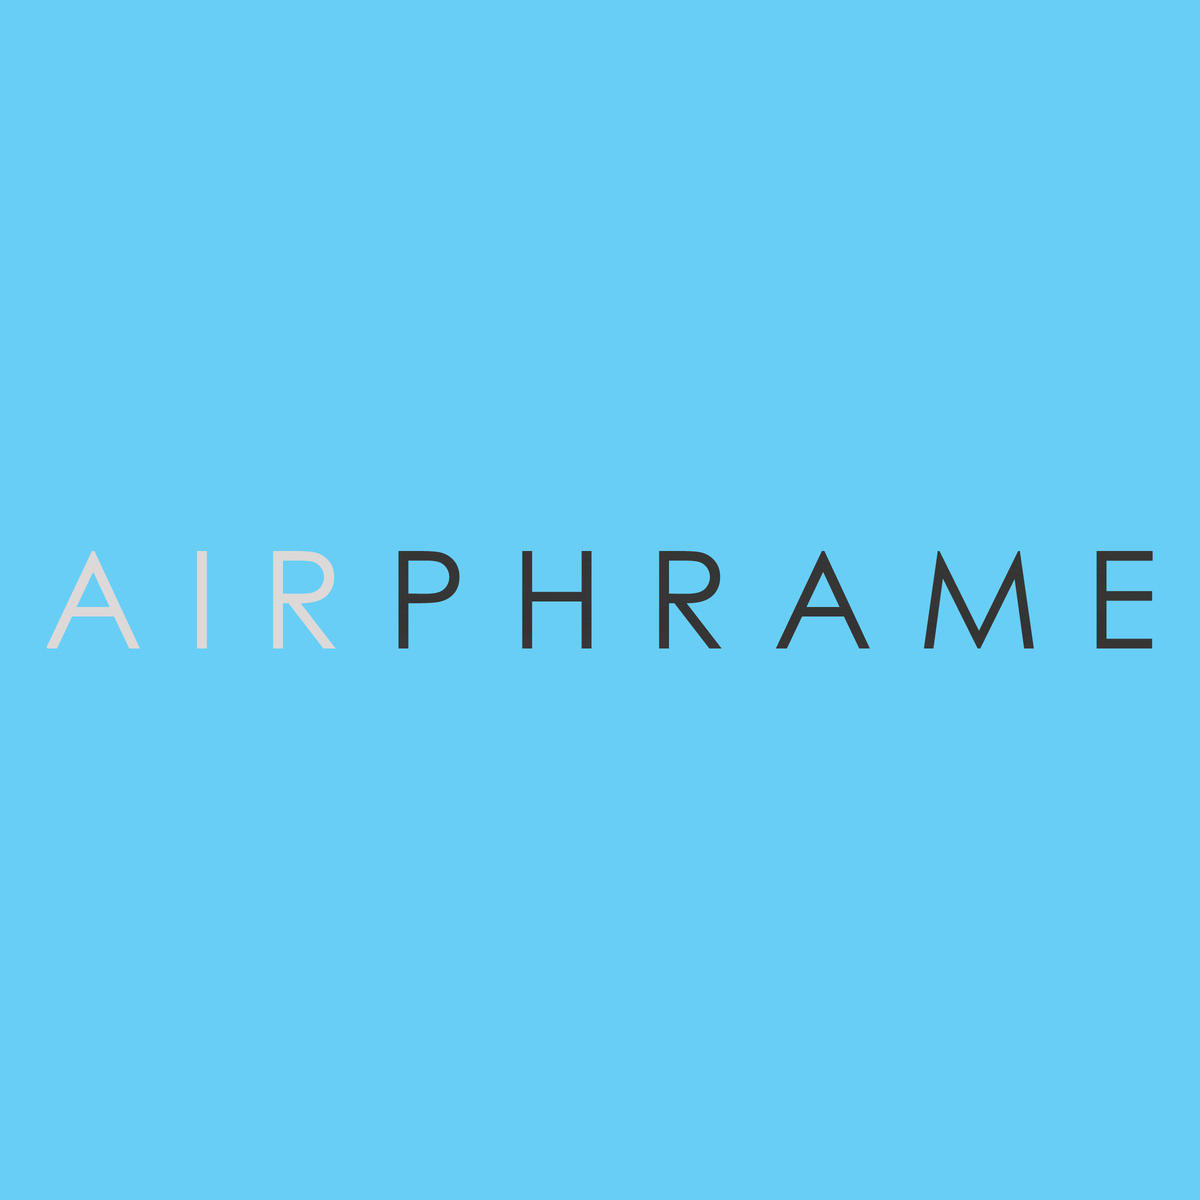 Airphrame